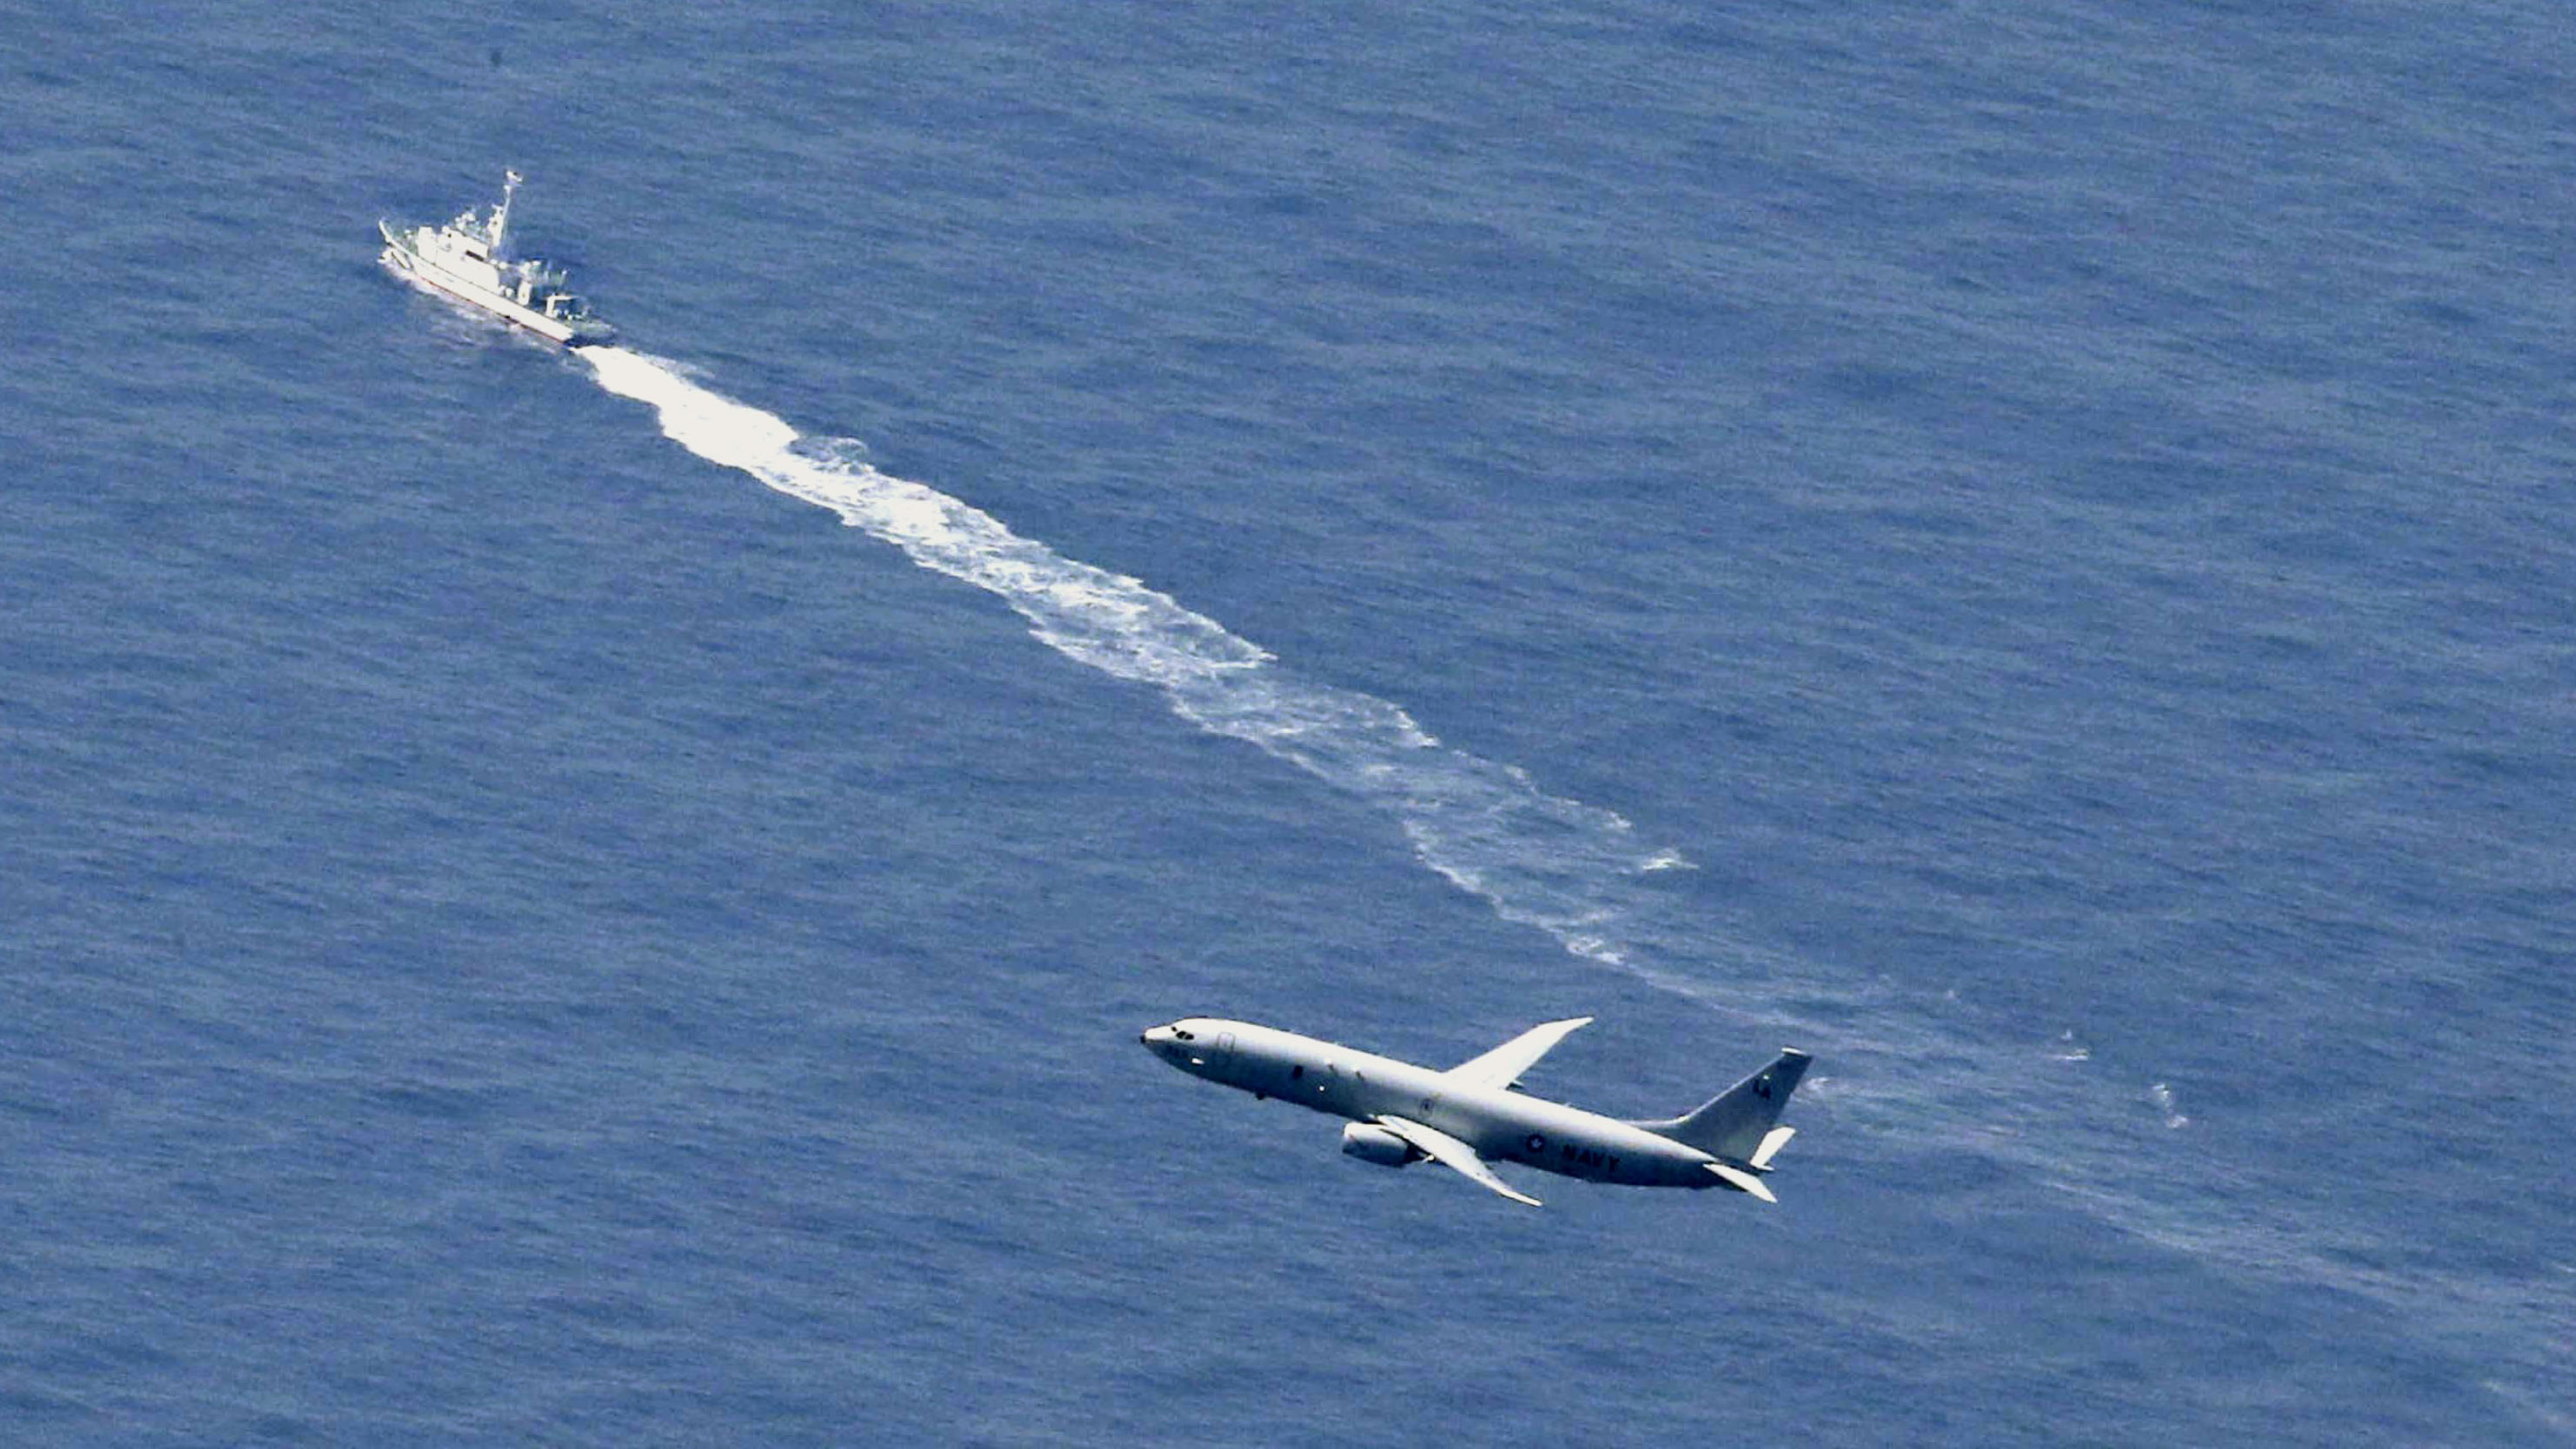 A Japan Coast Guard's vessel and U.S. military plane search for a Japanese fighter jet, in the waters off Aomori, northern Japan, Wednesday, April 10, 2019. The Japanese air force F-35 stealth fighter crashed into the Pacific Ocean during a night training flight and parts of the jet were recovered, the defense ministry said Wednesday. (Kyodo News via AP)